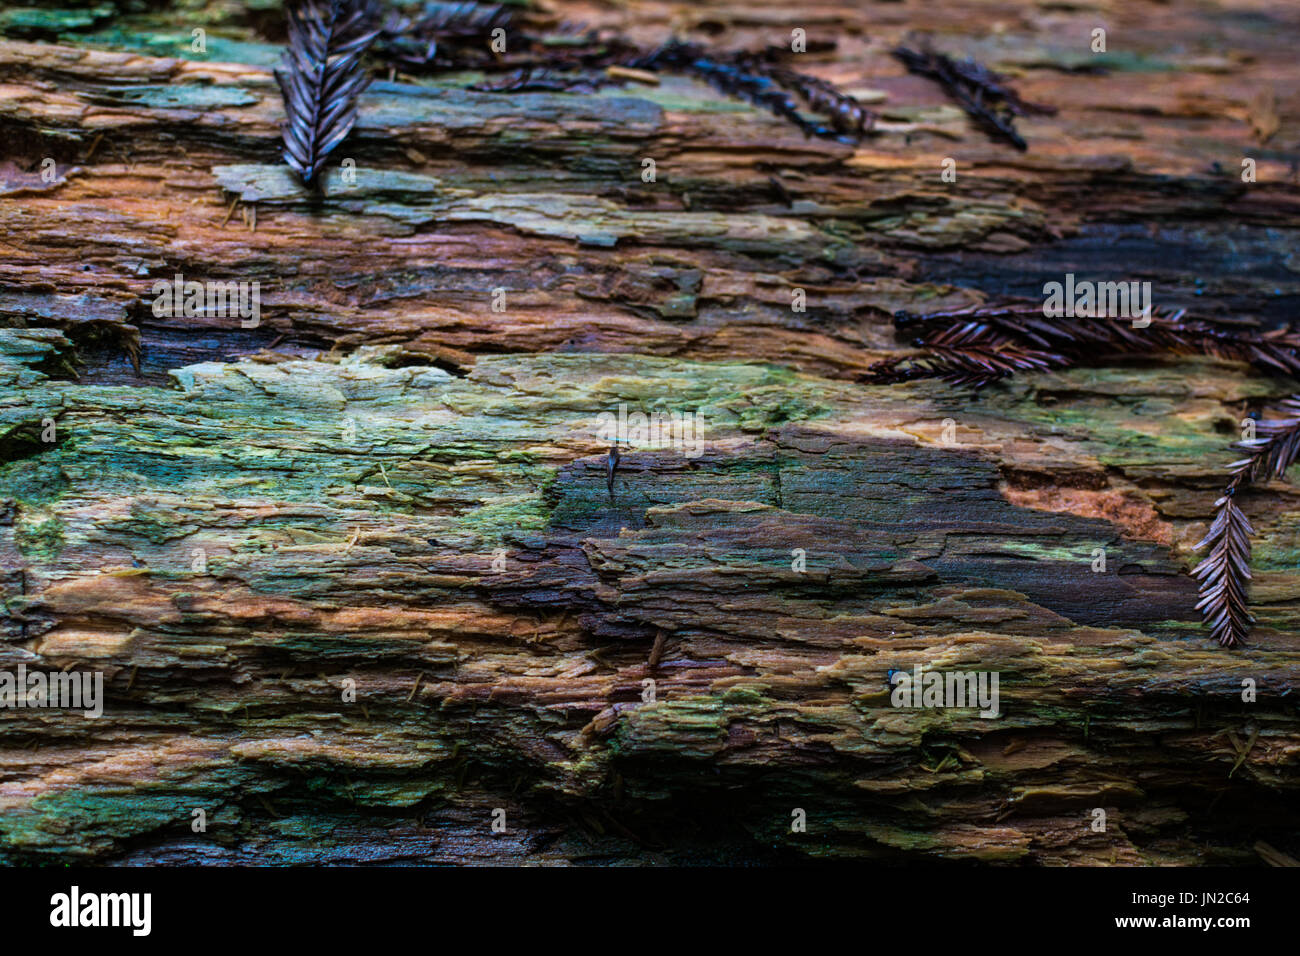 The texture of the ancient redwoods is full of color - Stock Image